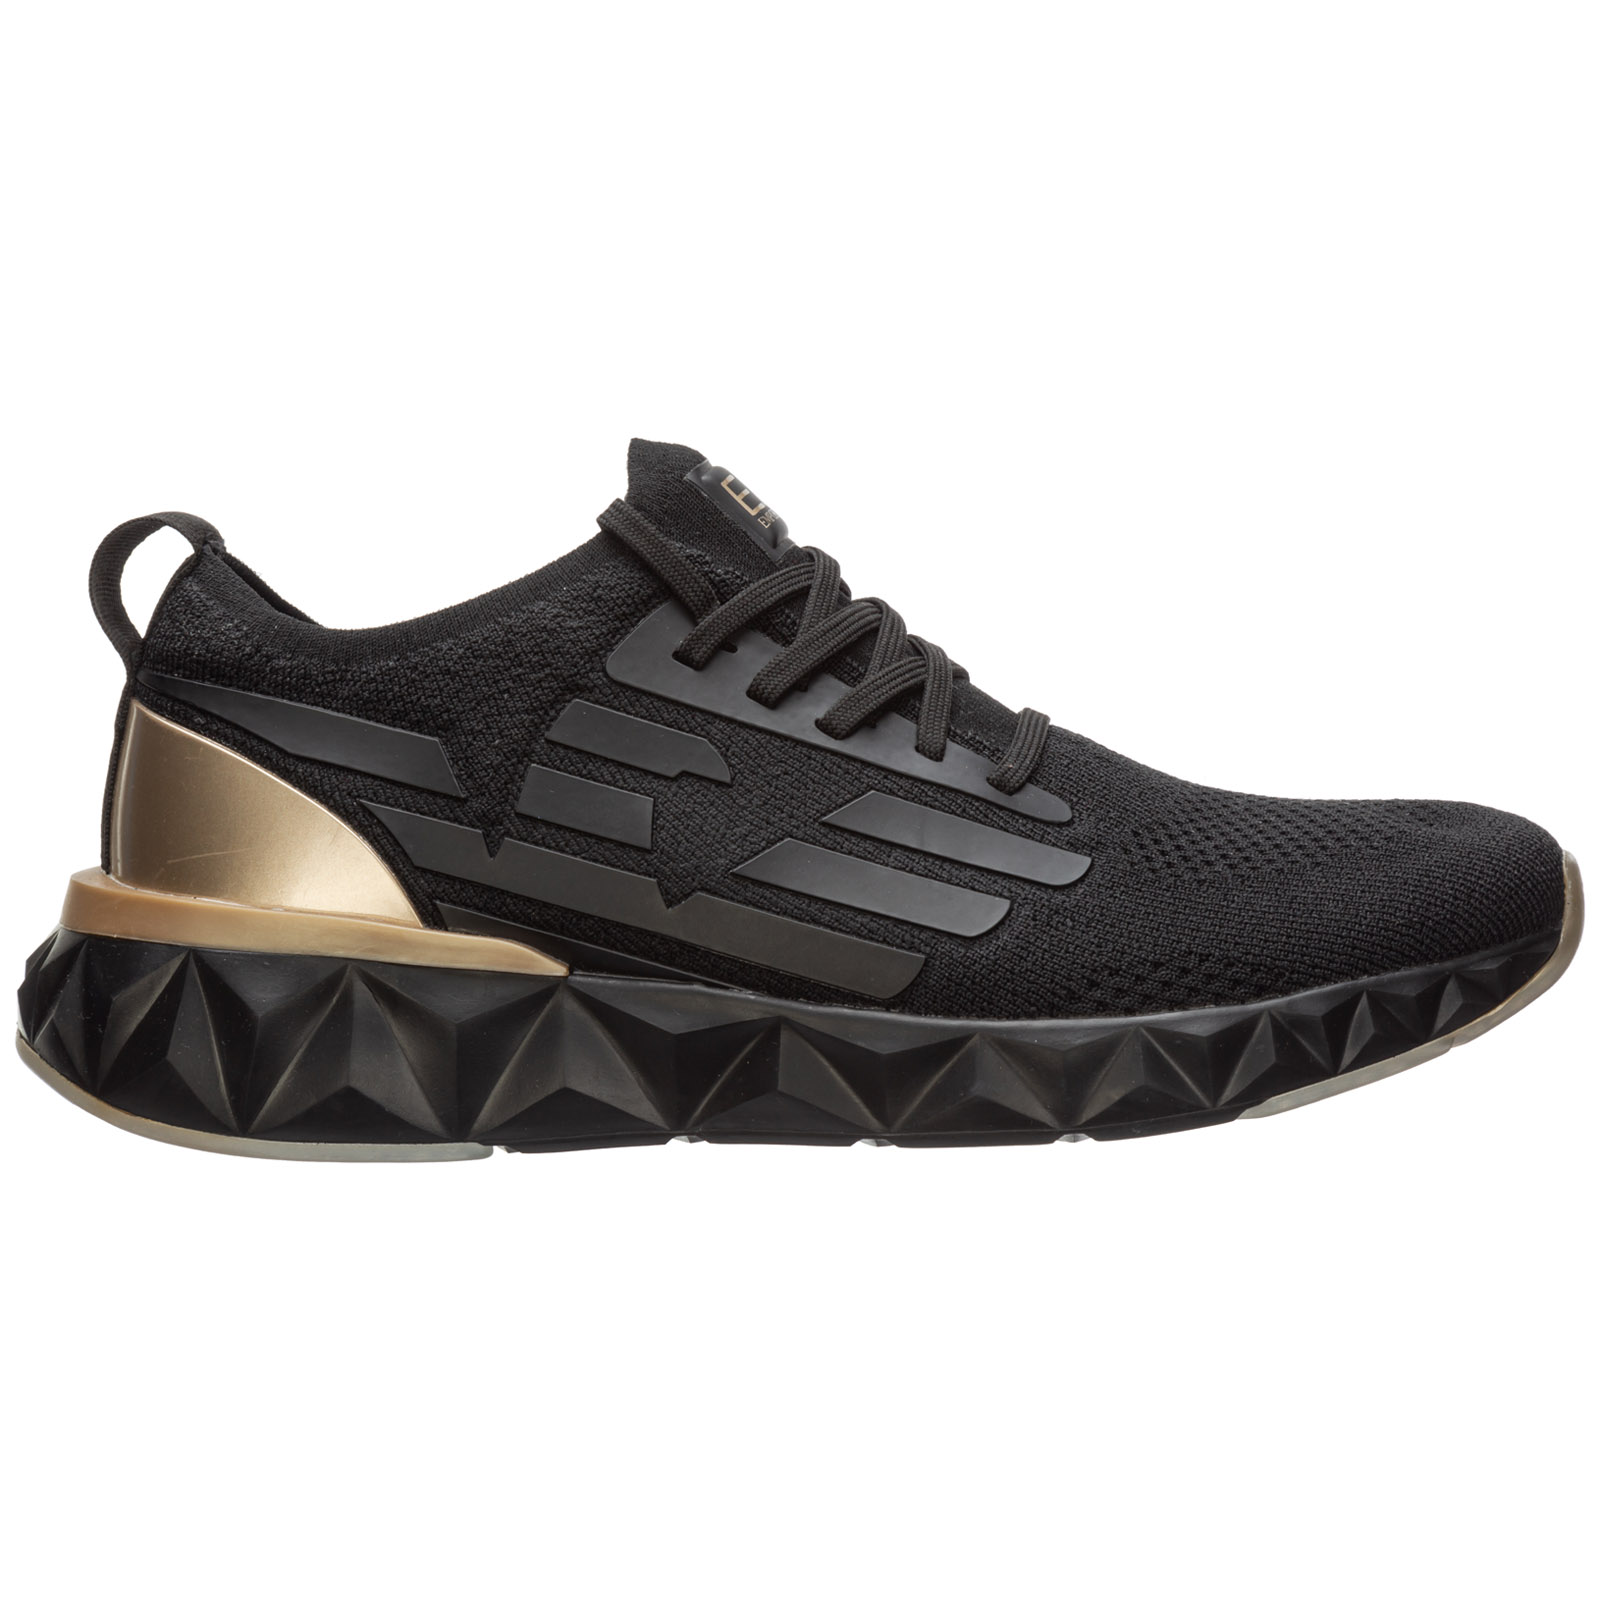 mens armani trainers, OFF 76%,Buy!